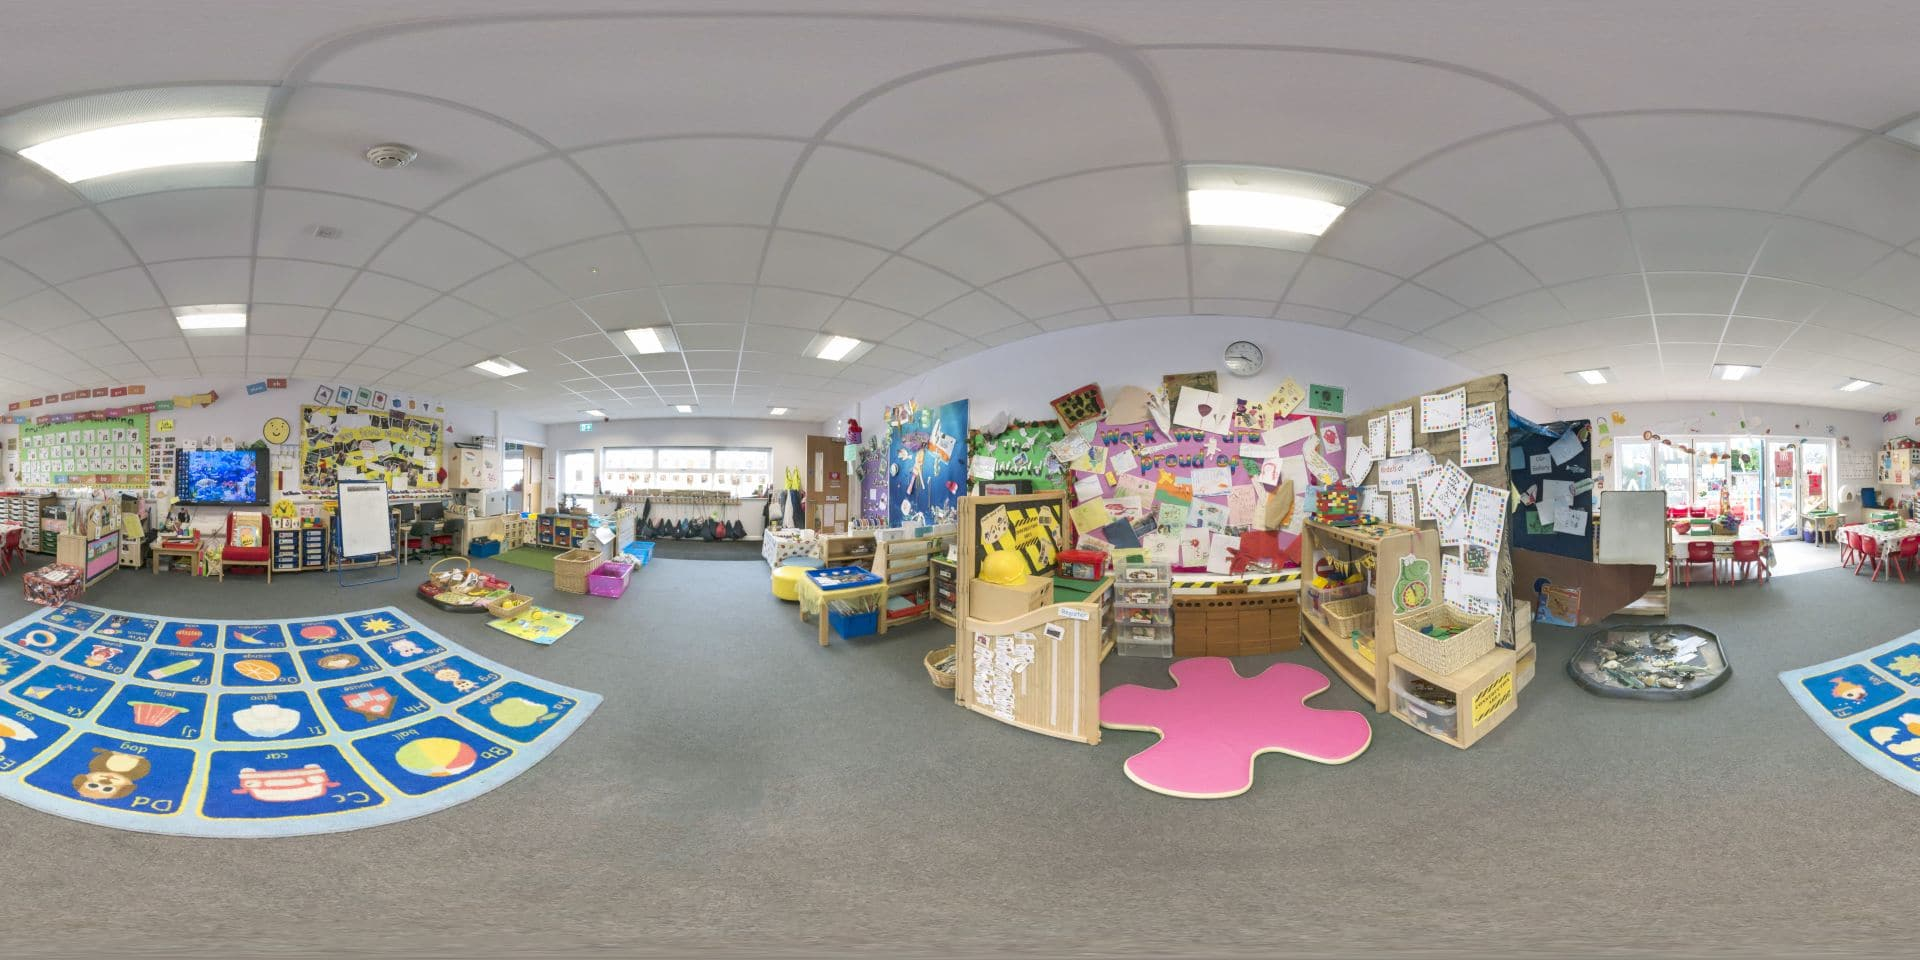 Elm Grove Primary School – Worthing